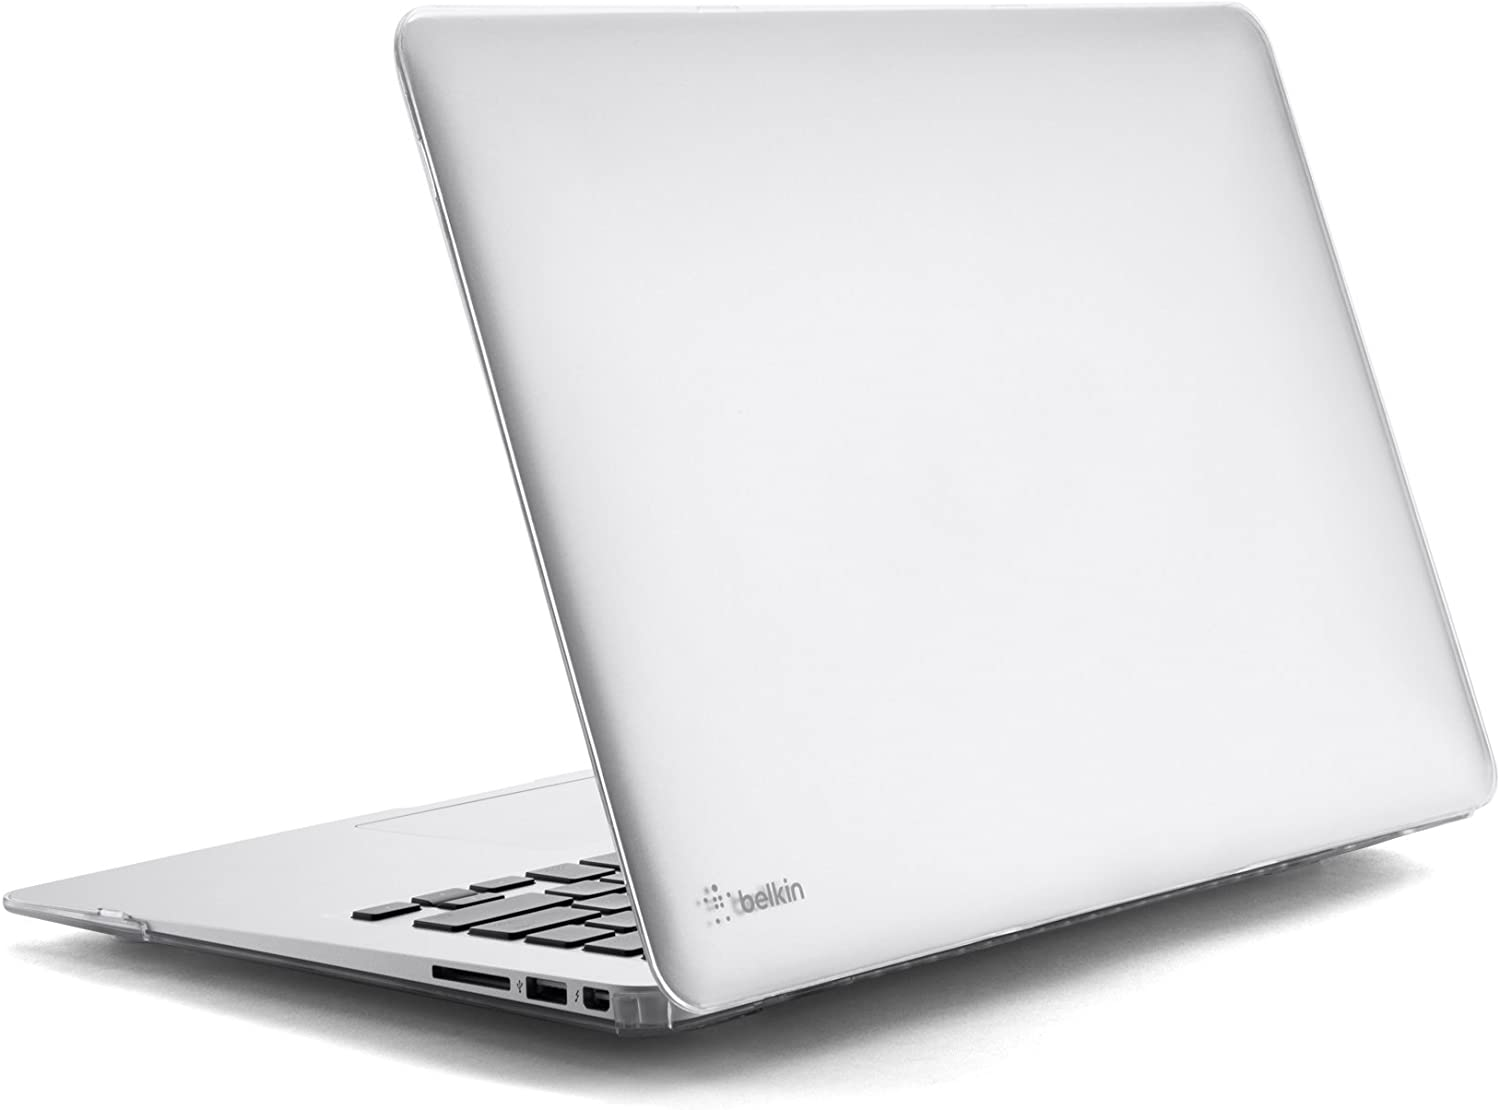 Belkin Snap Shield Laptop Cover for 11-Inch MacBooks and Chromebooks (11-Inch Case)